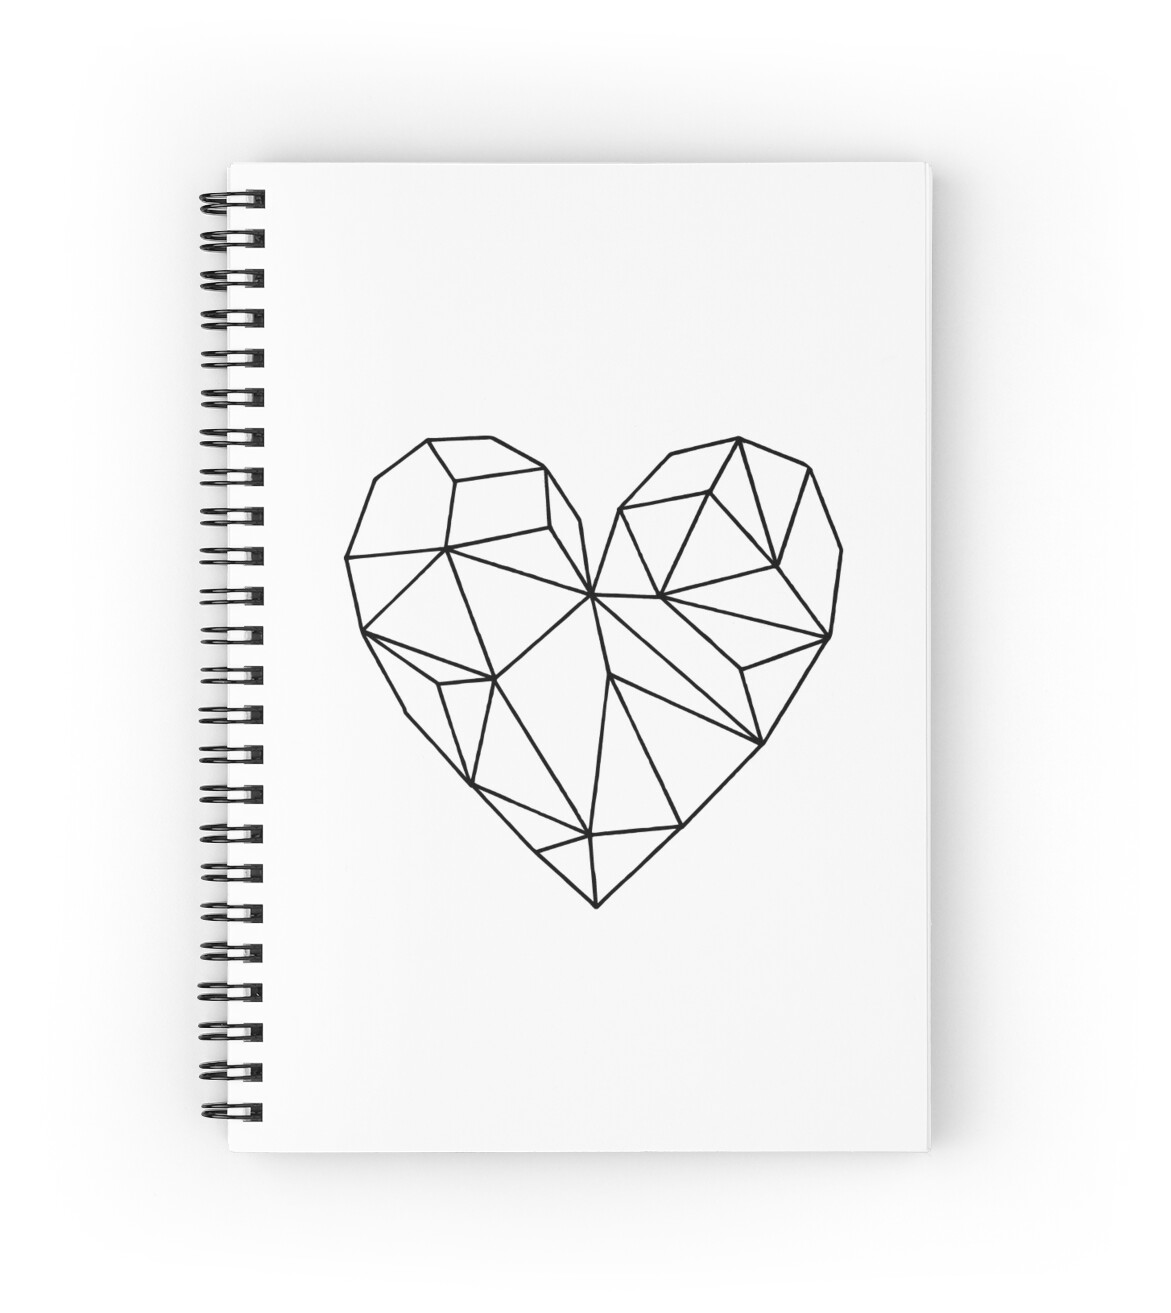 Black Aesthetic Transparent Geometric Heart Spiral